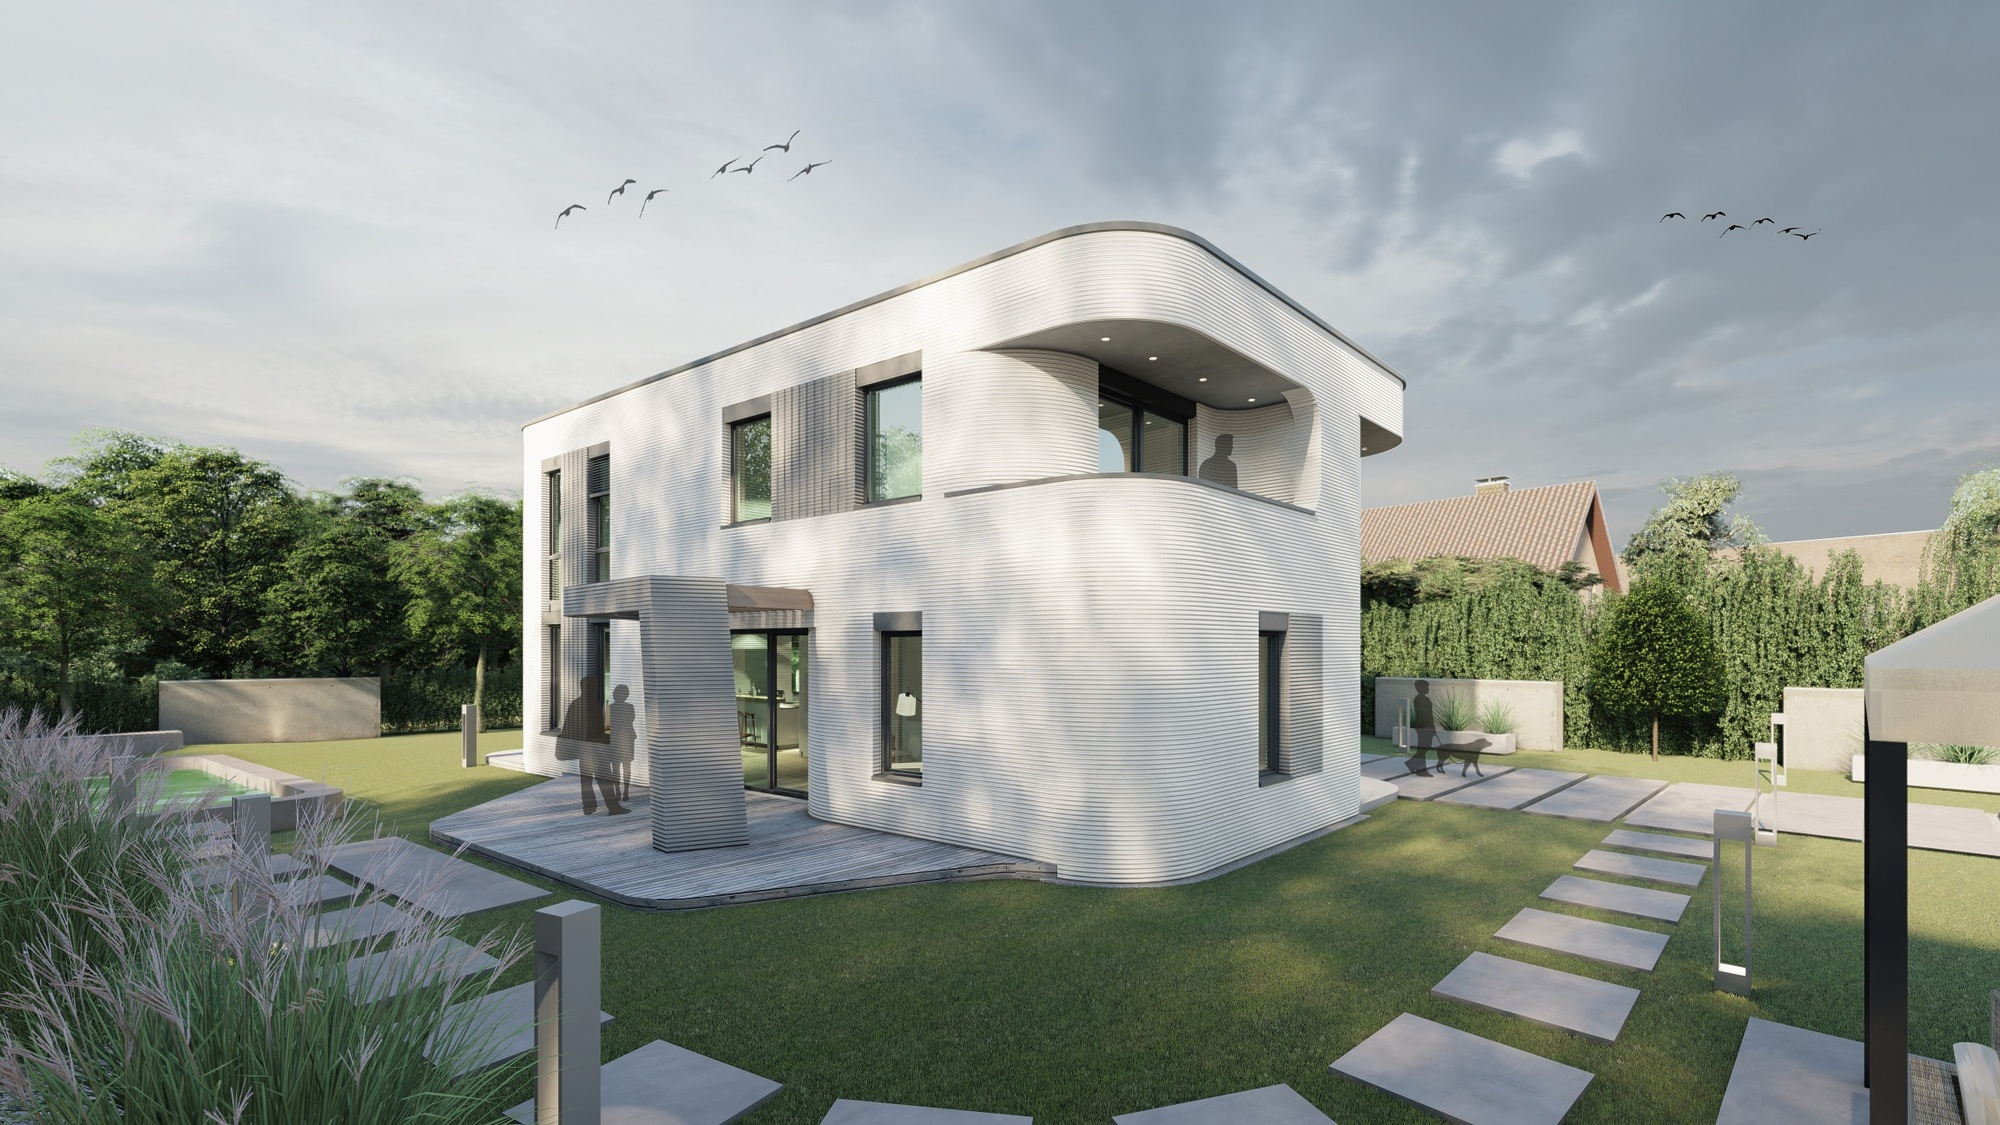 3D Printing for Residential is Market-Ready: Germany's First Building is Under Construction